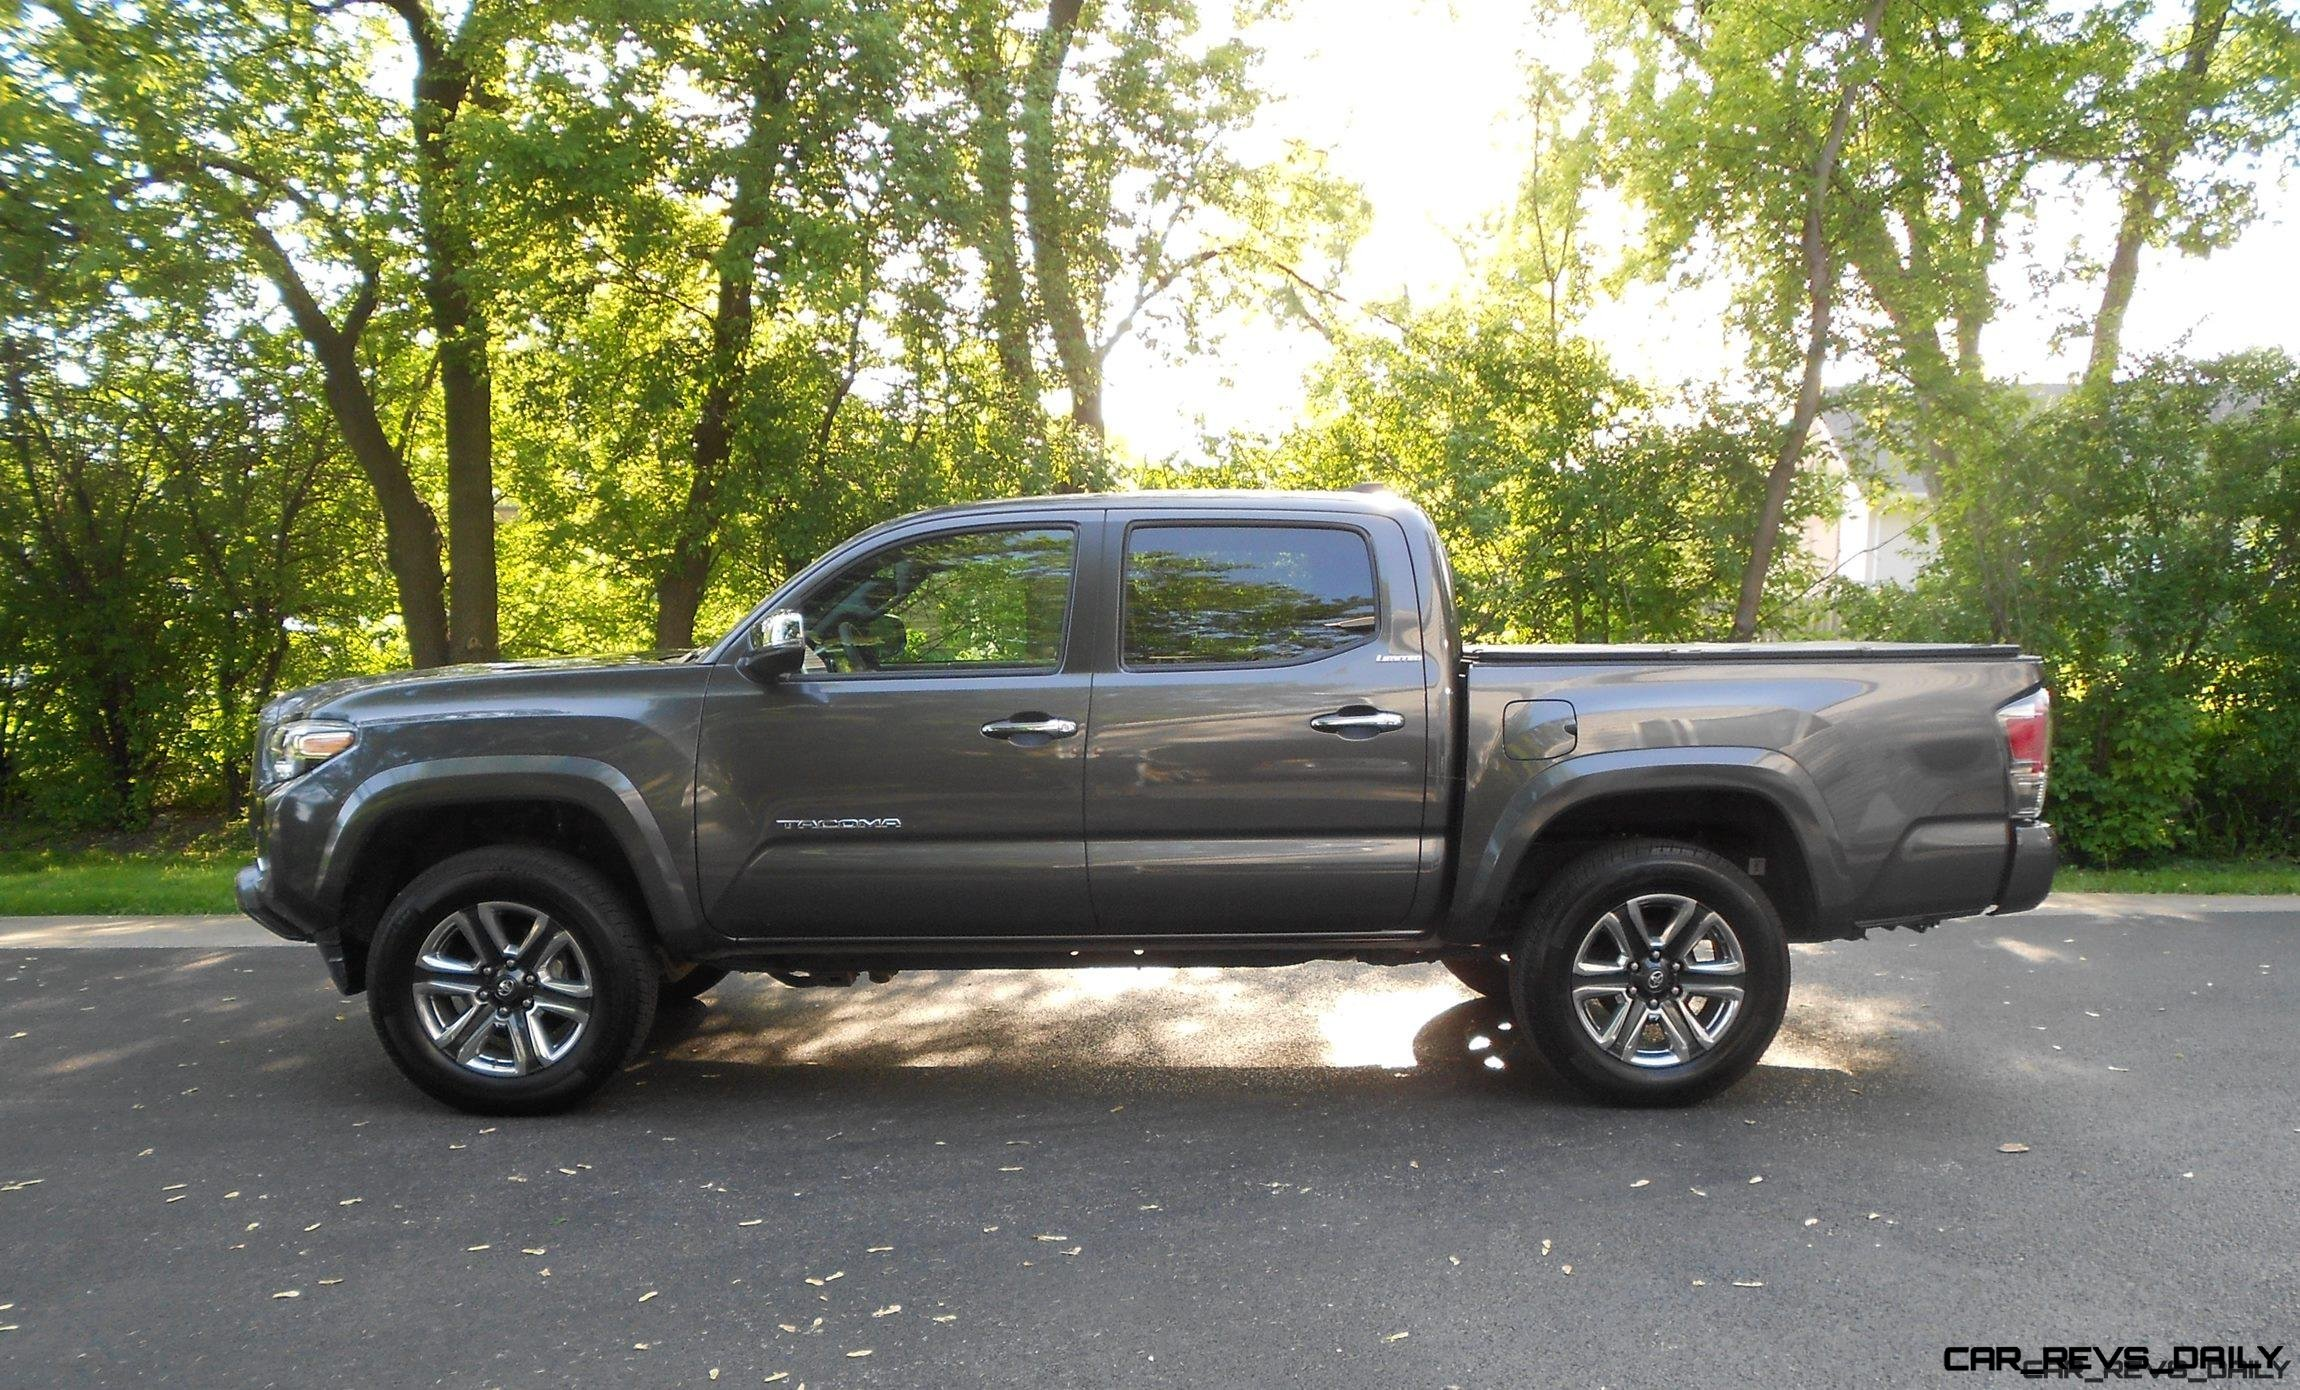 road test review 2016 toyota tacoma limited 4x4 doublecab by ken hawkeye glassman. Black Bedroom Furniture Sets. Home Design Ideas